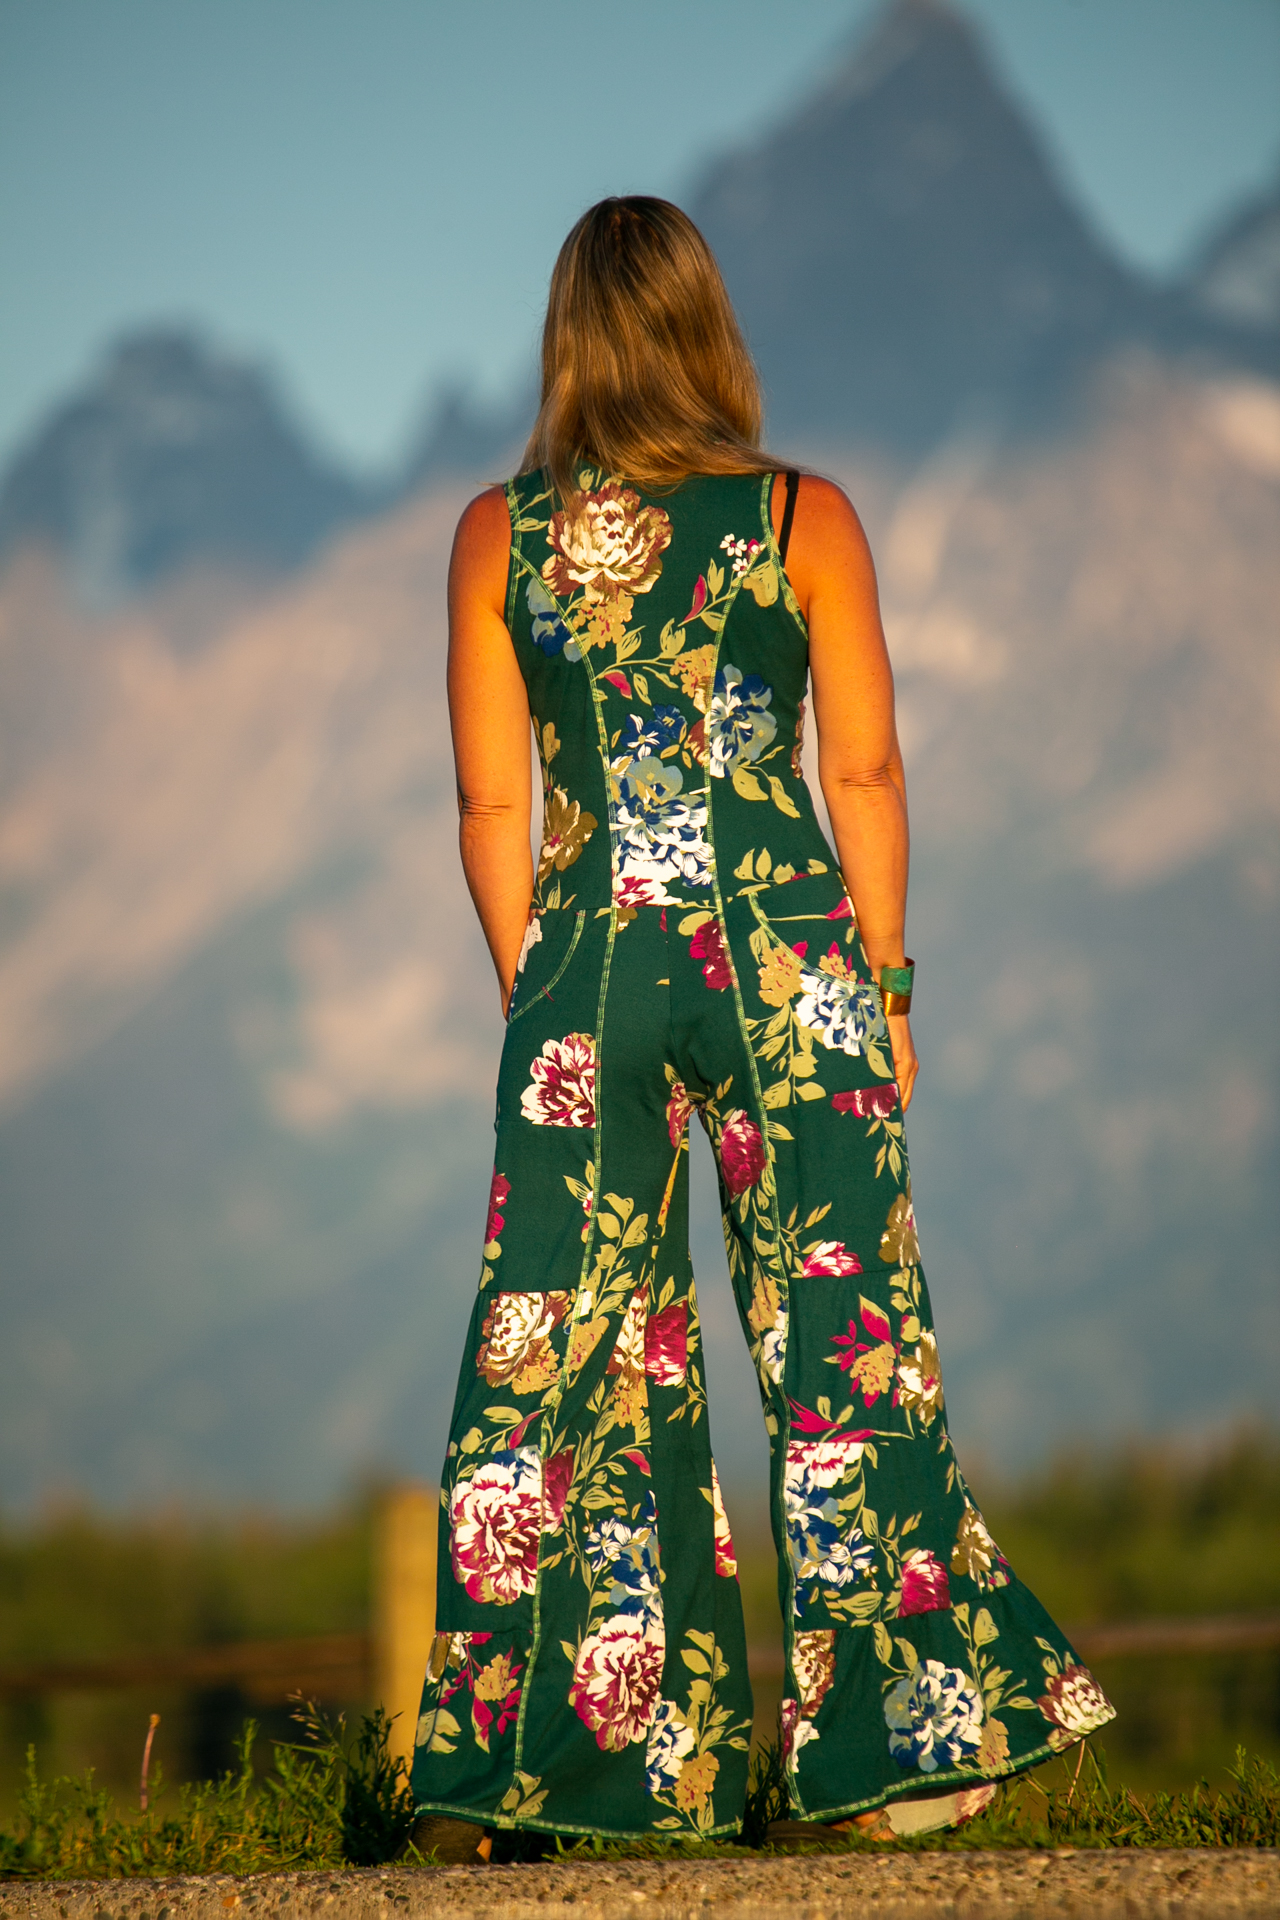 Fashion designer Autumn Teneyl wearing a boho style one piece jumpsuit in the mountains.